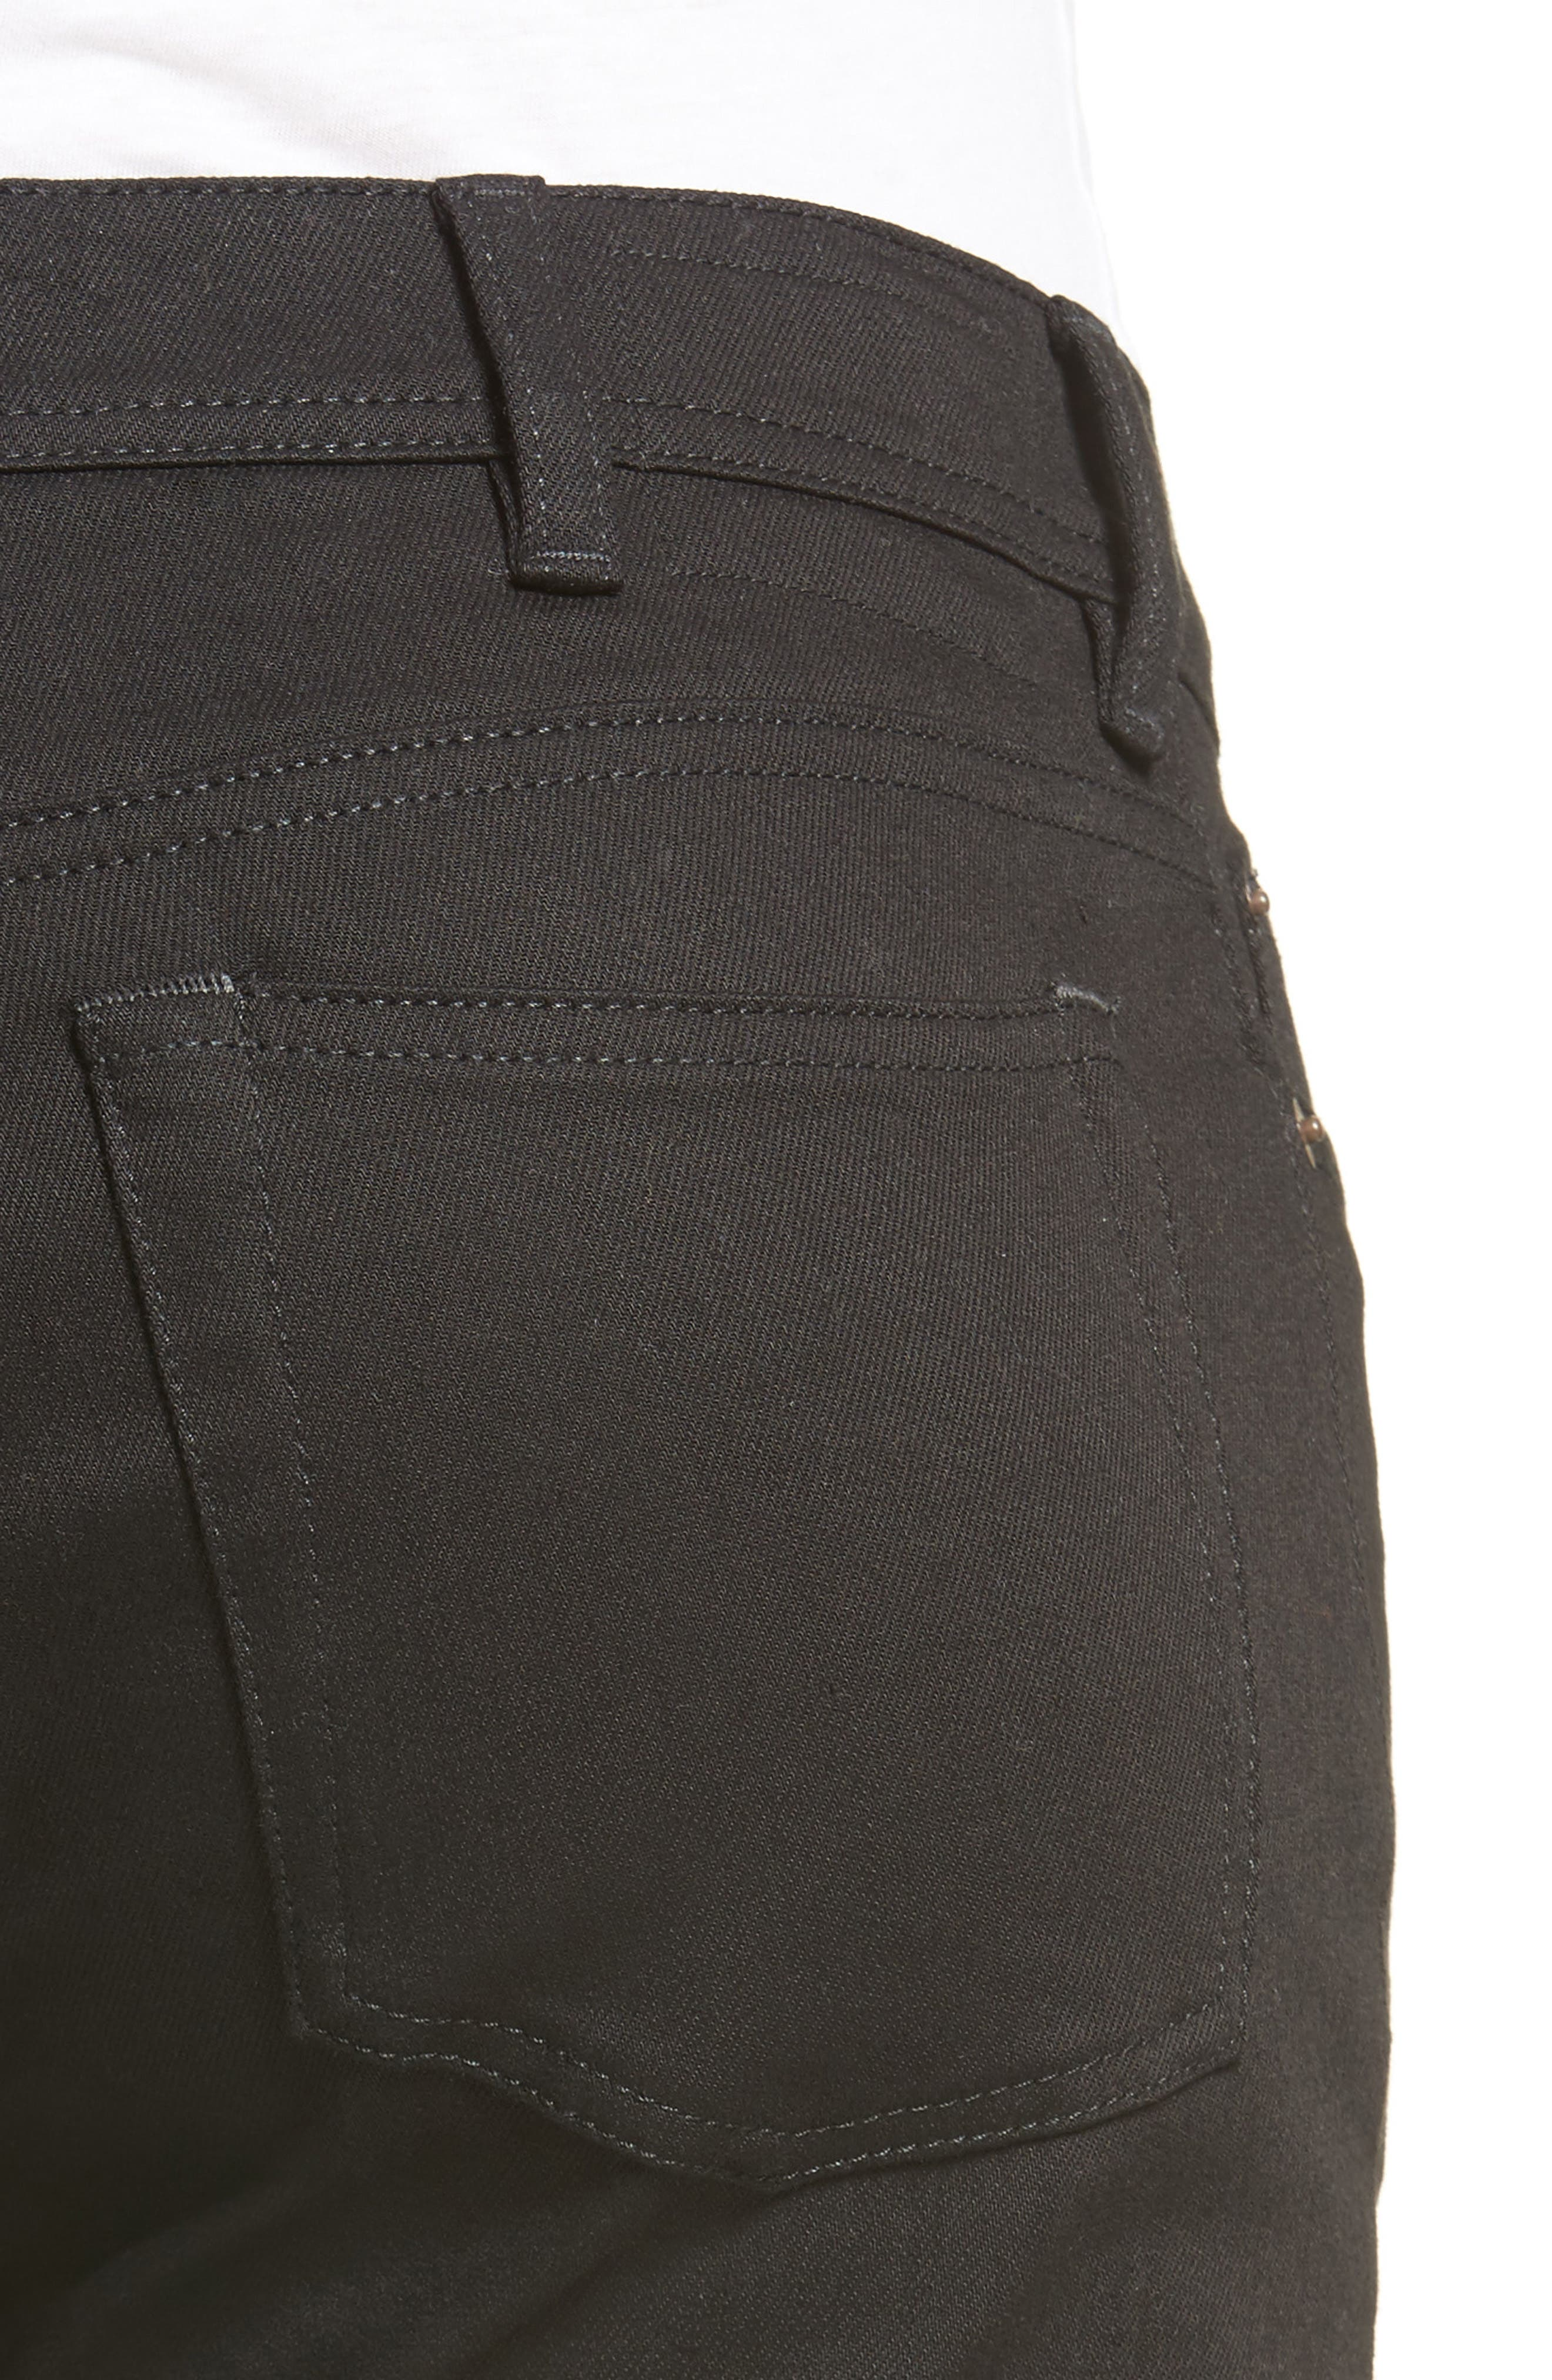 North Skinny Jeans,                             Alternate thumbnail 4, color,                             001